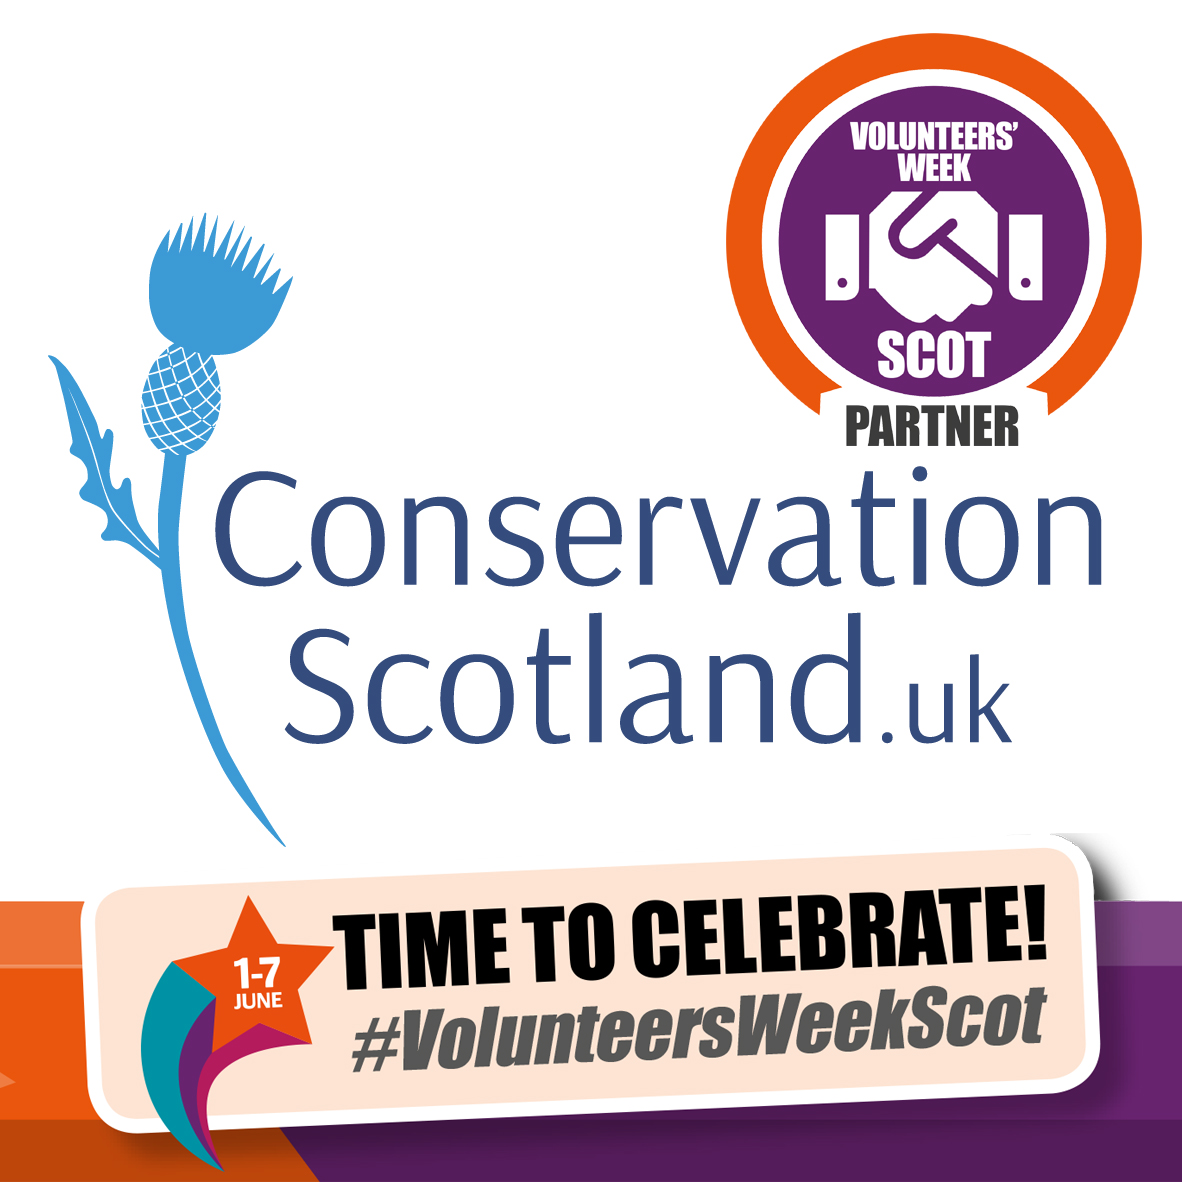 Conservation Scotland, the online hub for sharing free, nature-based activities and conservation volunteering opportunities in Scotland is proud to be a partner of the 2019 Volunteers' Week Scotland – dates for your diary at  www.conservationscotland.uk